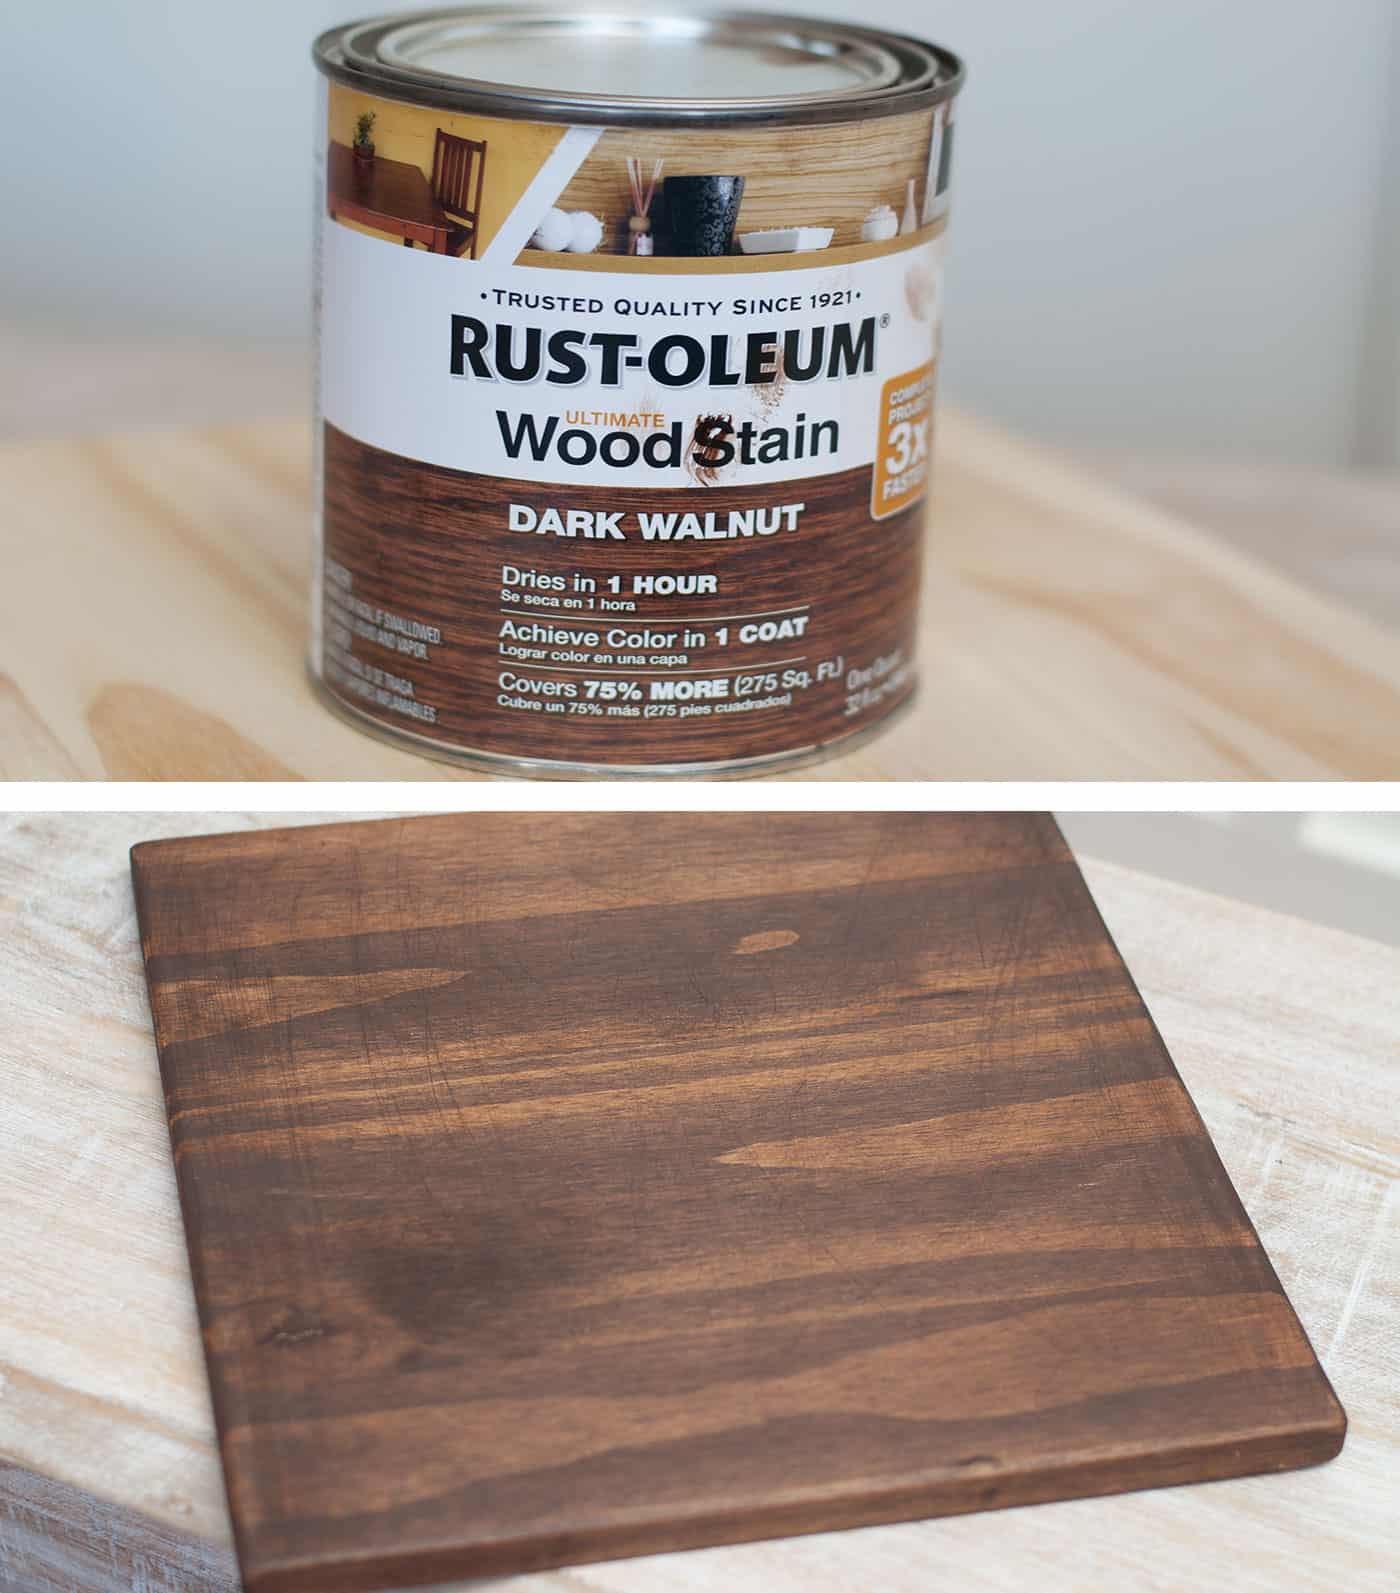 can of Rust-oleum wood stain in dark walnut and a stained piece of wood